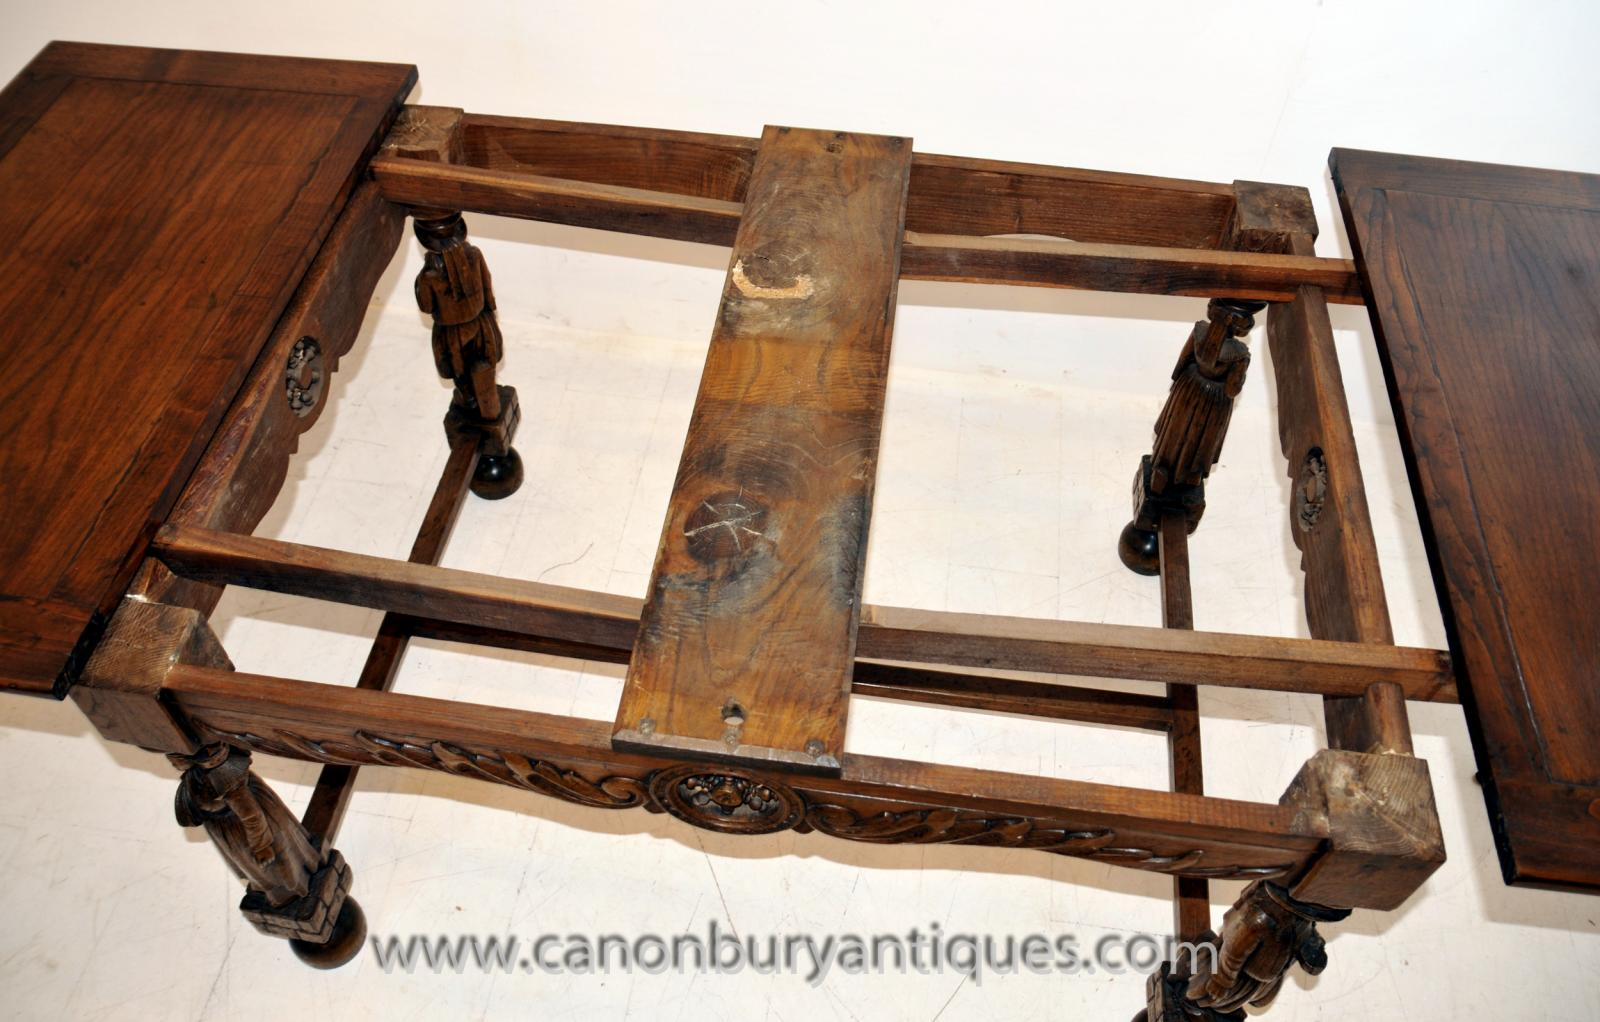 Antique French Provincial Extending Oak Dining Table Carved Legs Refectory